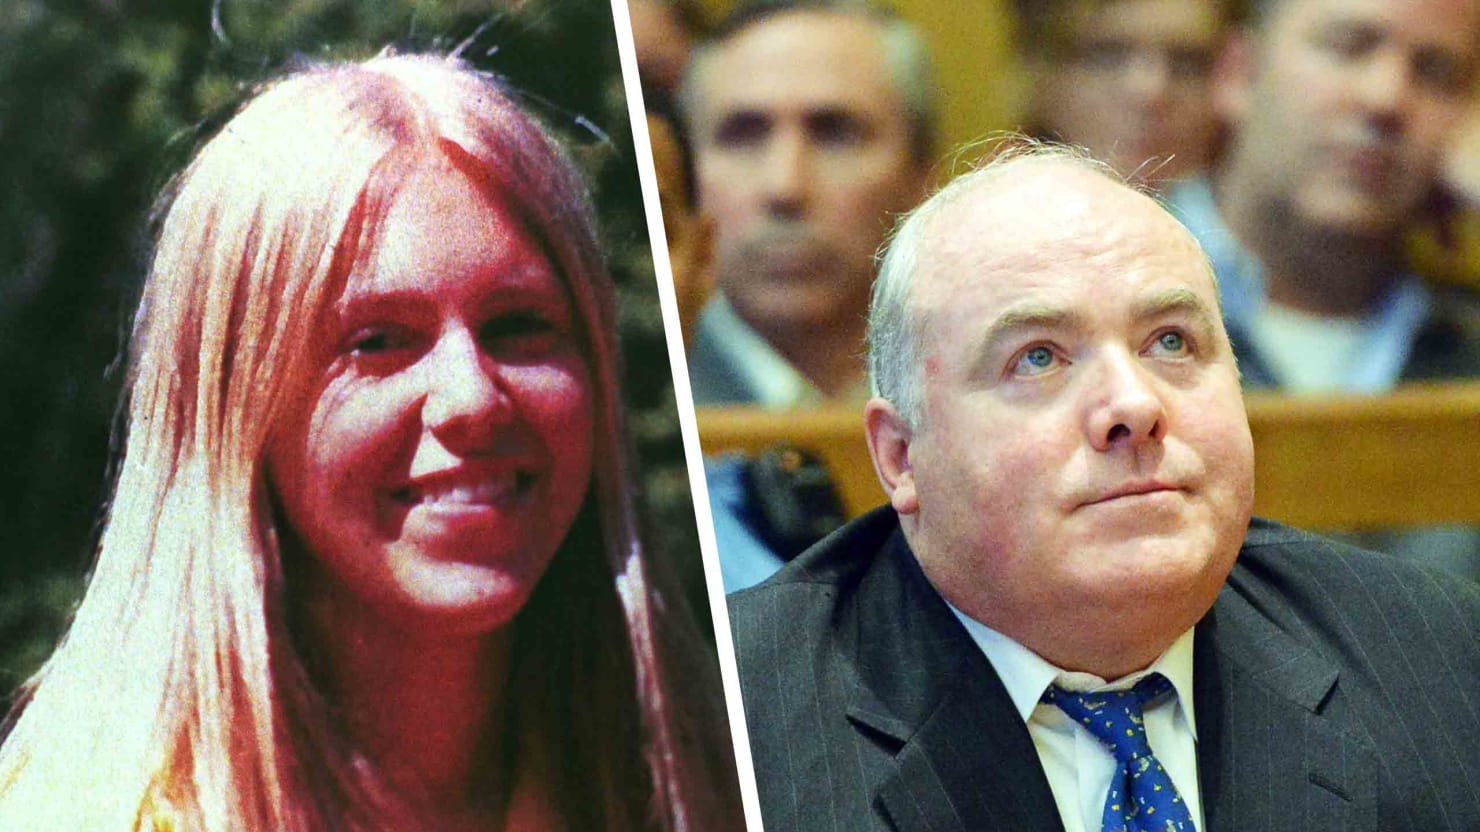 Michael Skakel Was Convicted Of Murdering Martha Moxley So Why Is He Free